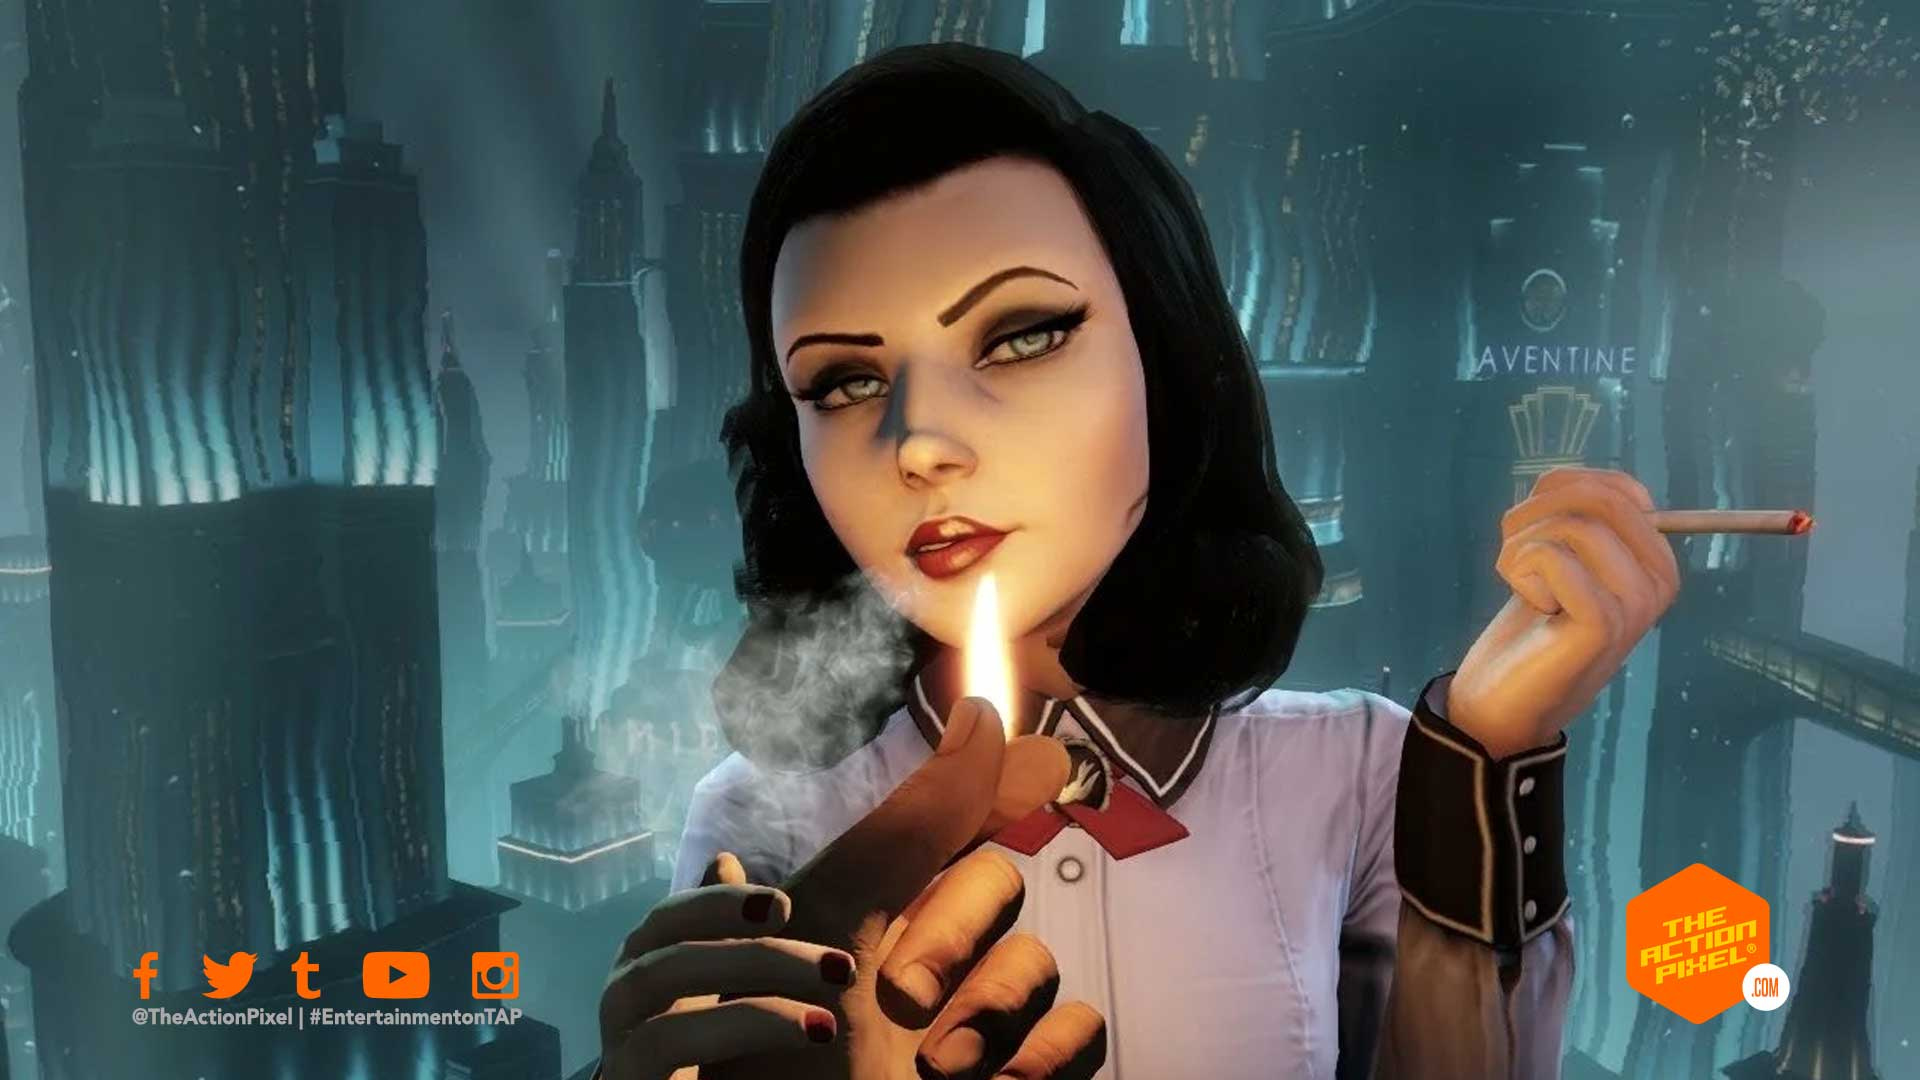 bioshock, bioshock 4, 2k games, the action pixel, entertainment on tap,